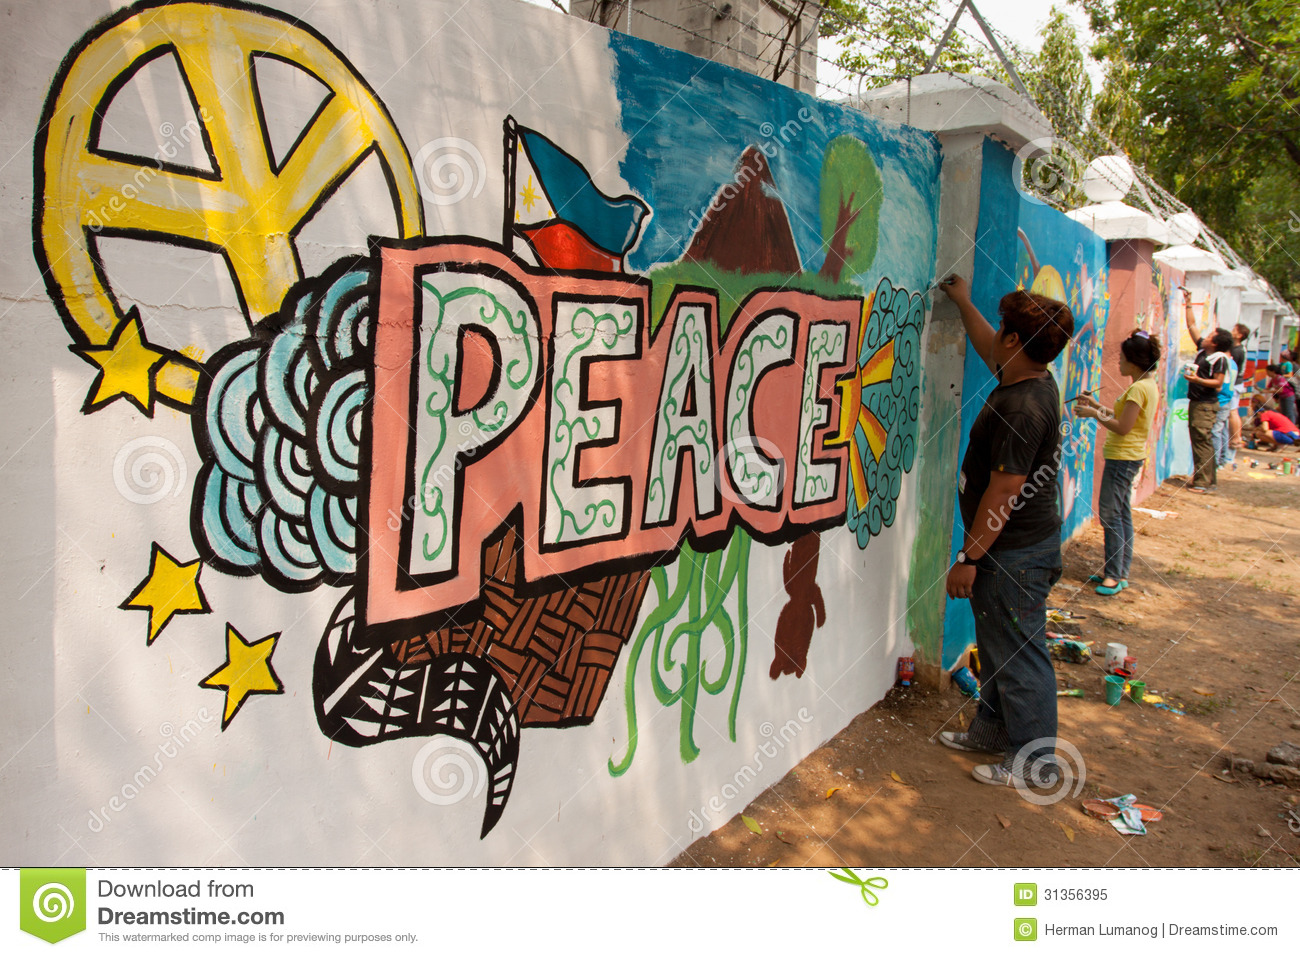 La Pintura Mural World Record Peace Mural Painting In Manila, Philippines